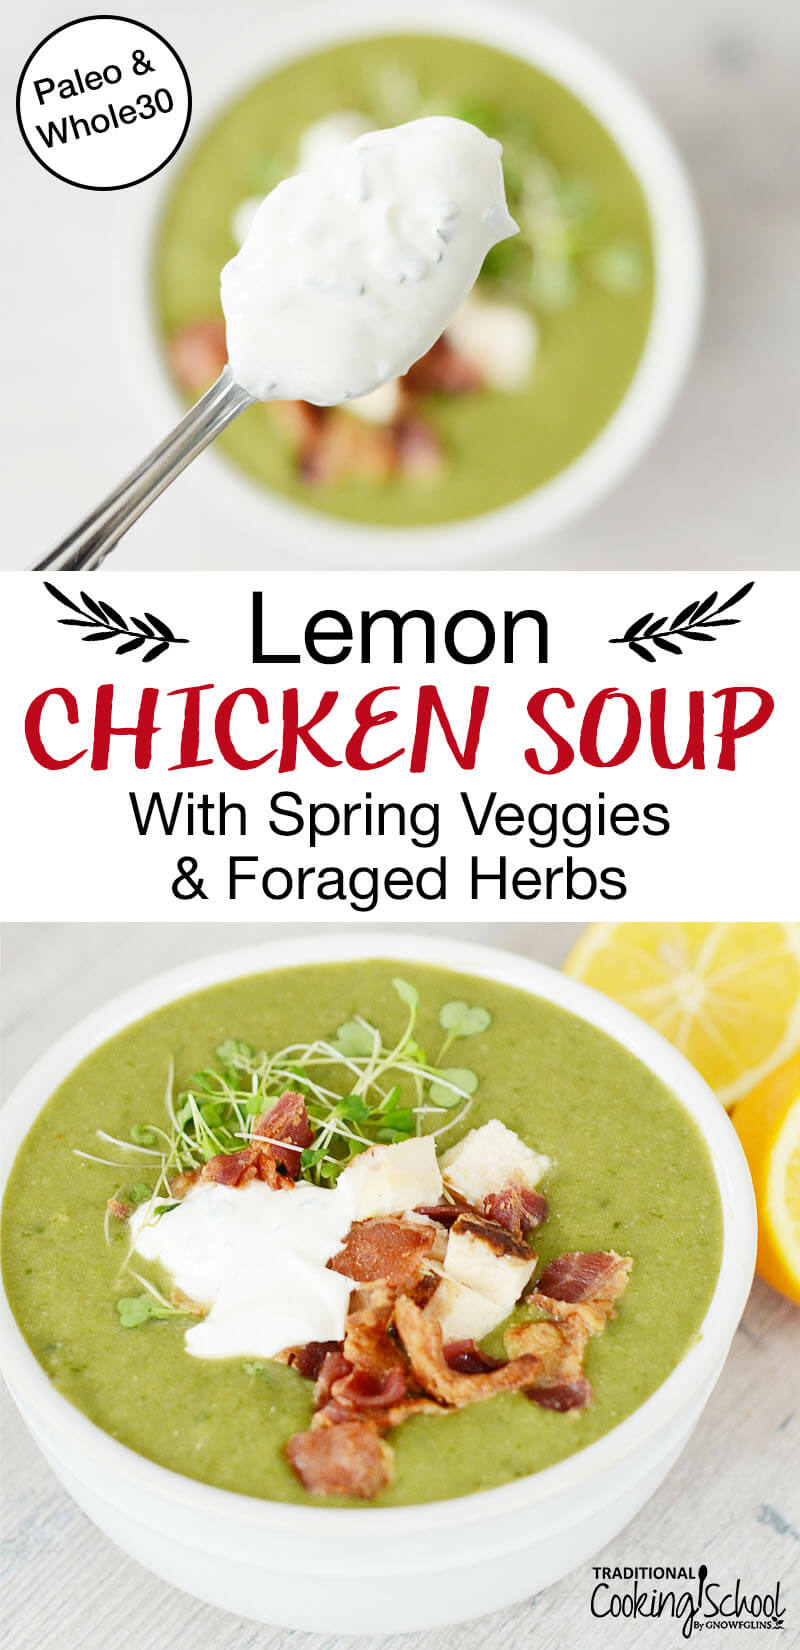 "photo collage of how to make chicken soup at home with text overlay: ""Lemon Chicken Soup With Spring Veggies & Foraged Herbs (Paleo & Whole30)"""